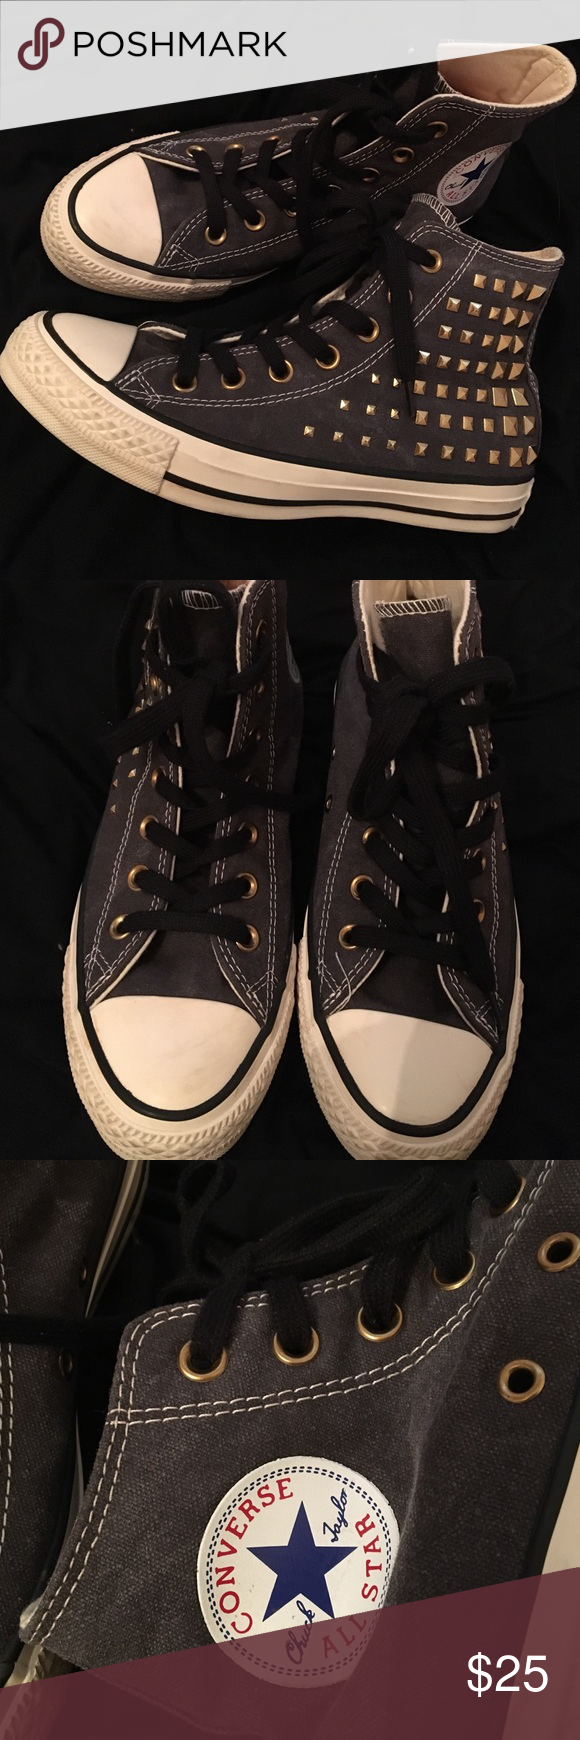 317d67c7a5f2 Studded Charcoal Grey High-Top Converse Excellent condition. Only worn once  or twice. Charcoal grey high-tops with gold studs on the sides.